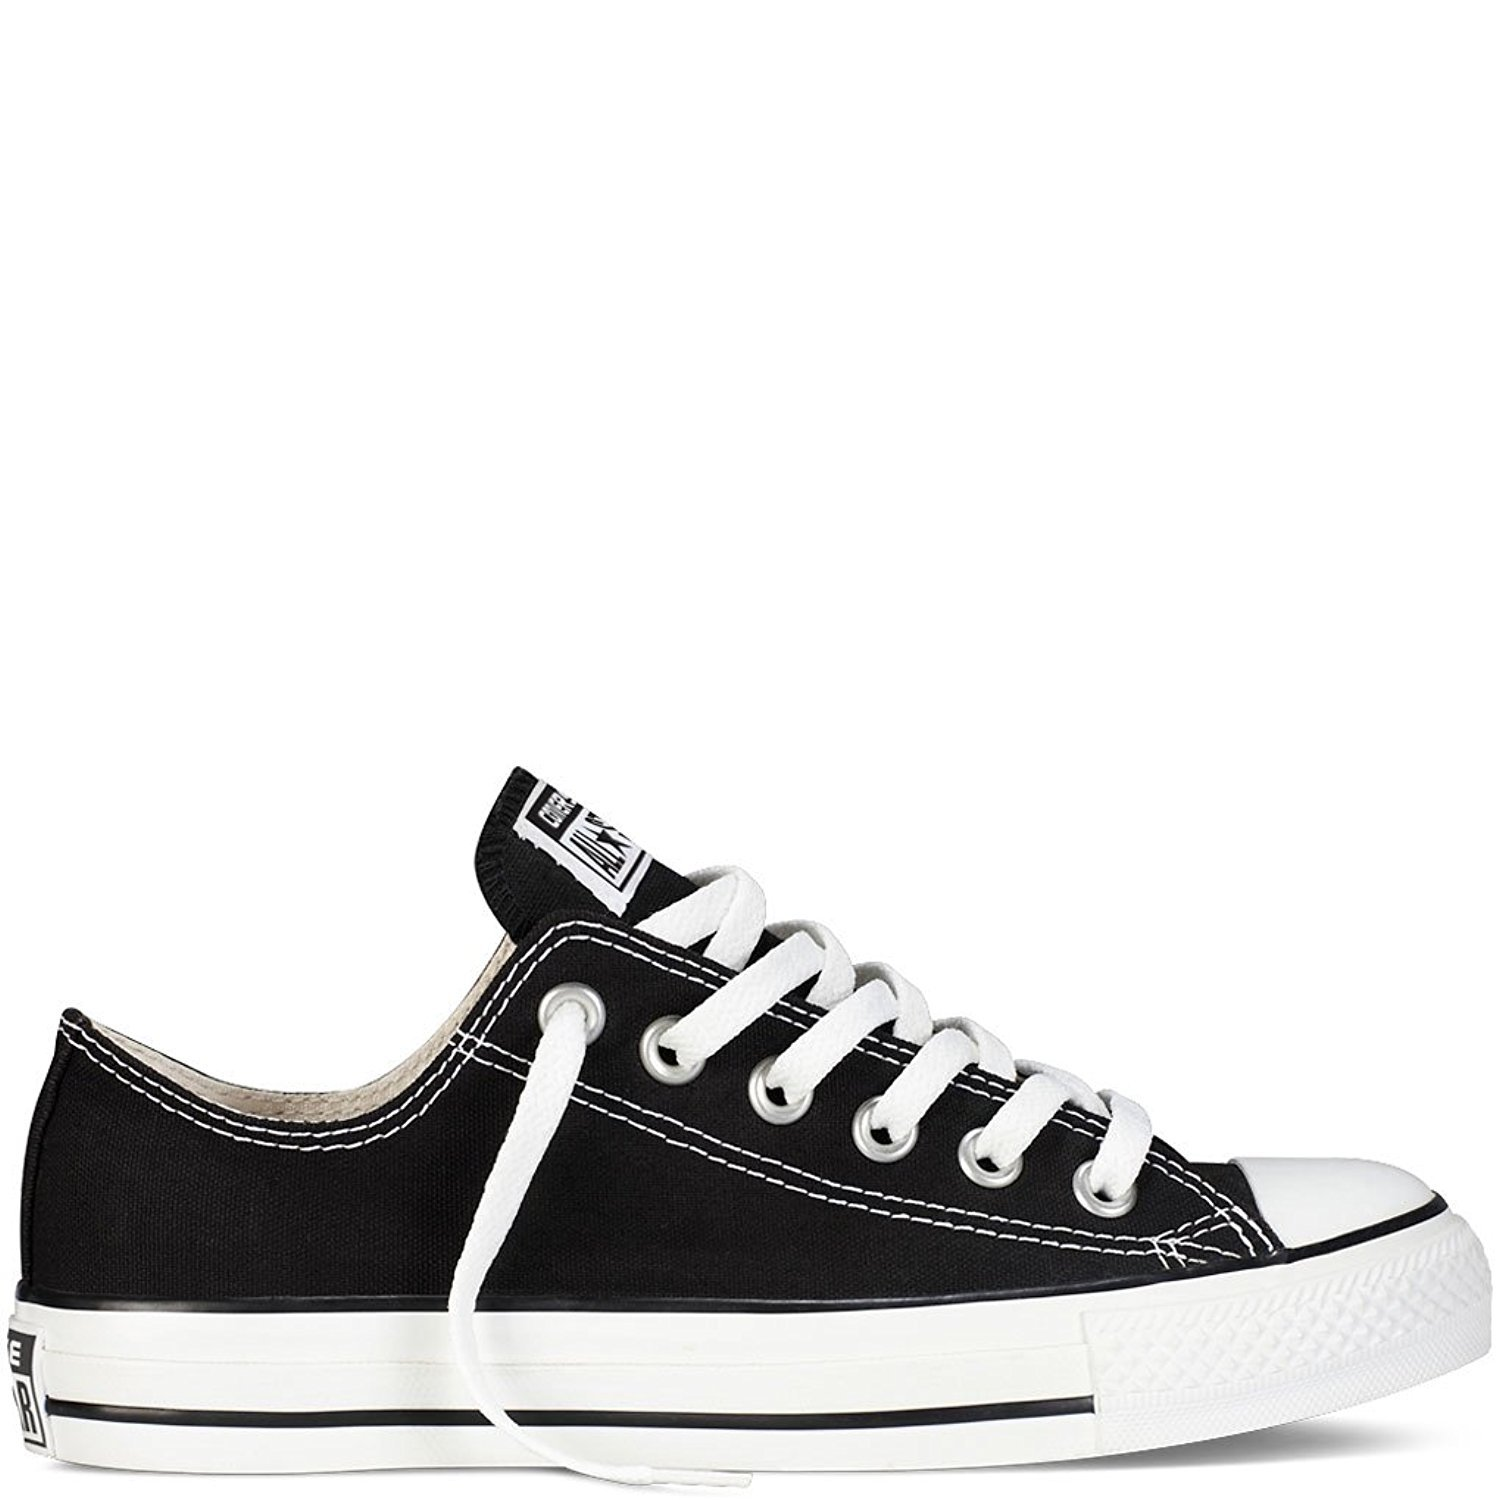 Converse Unisex Chuck Taylor All Star Ox Low Top Classic Black Sneakers - 11.5 D(M) US